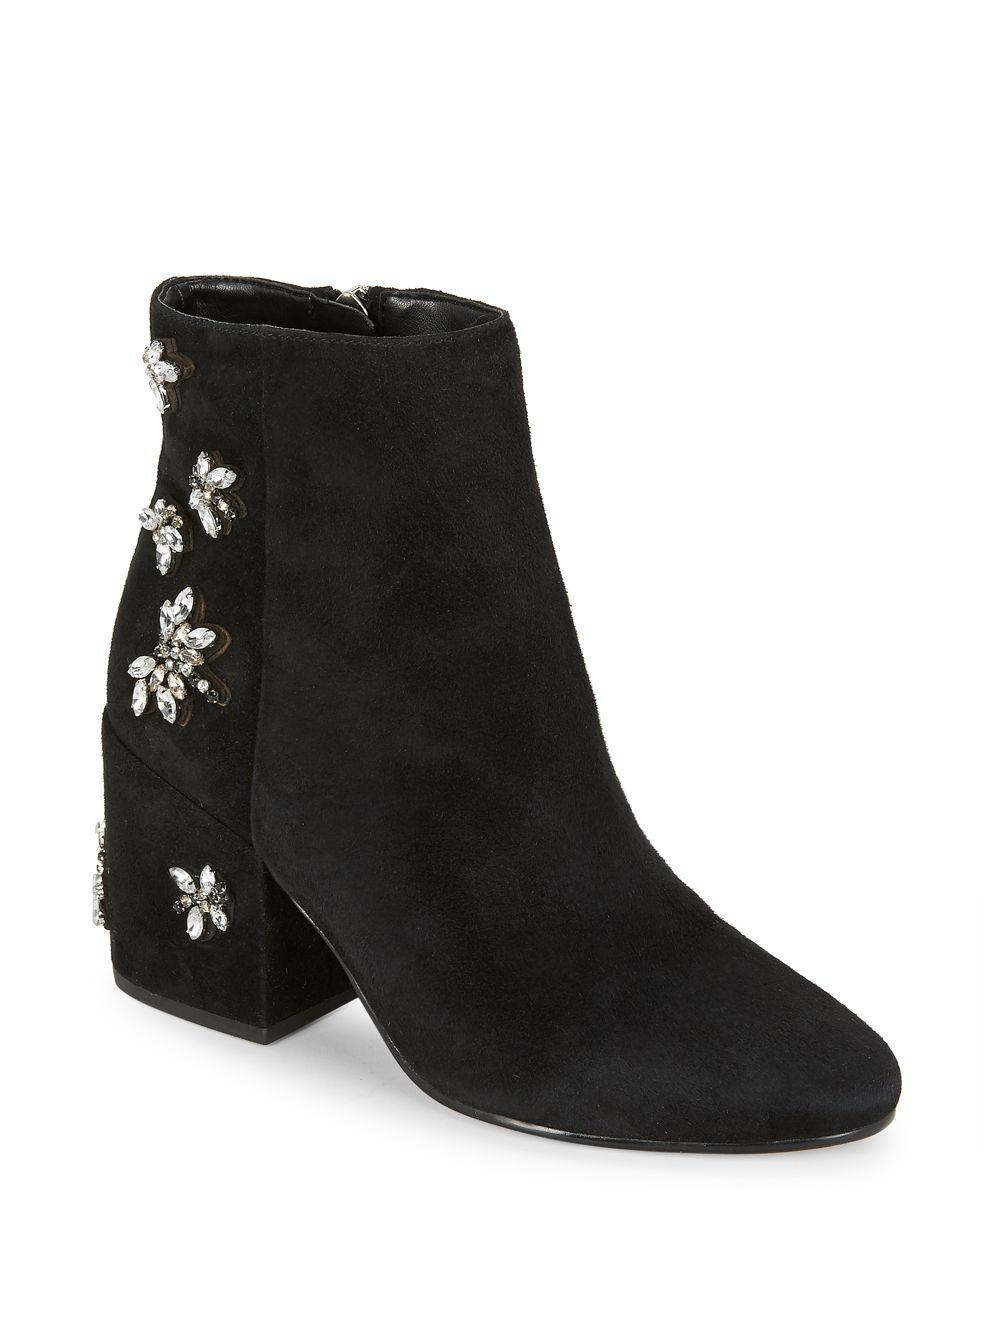 6f852d4a9f9786 Lyst - Sam Edelman Taye Suede Embellished Ankle Boots in Black